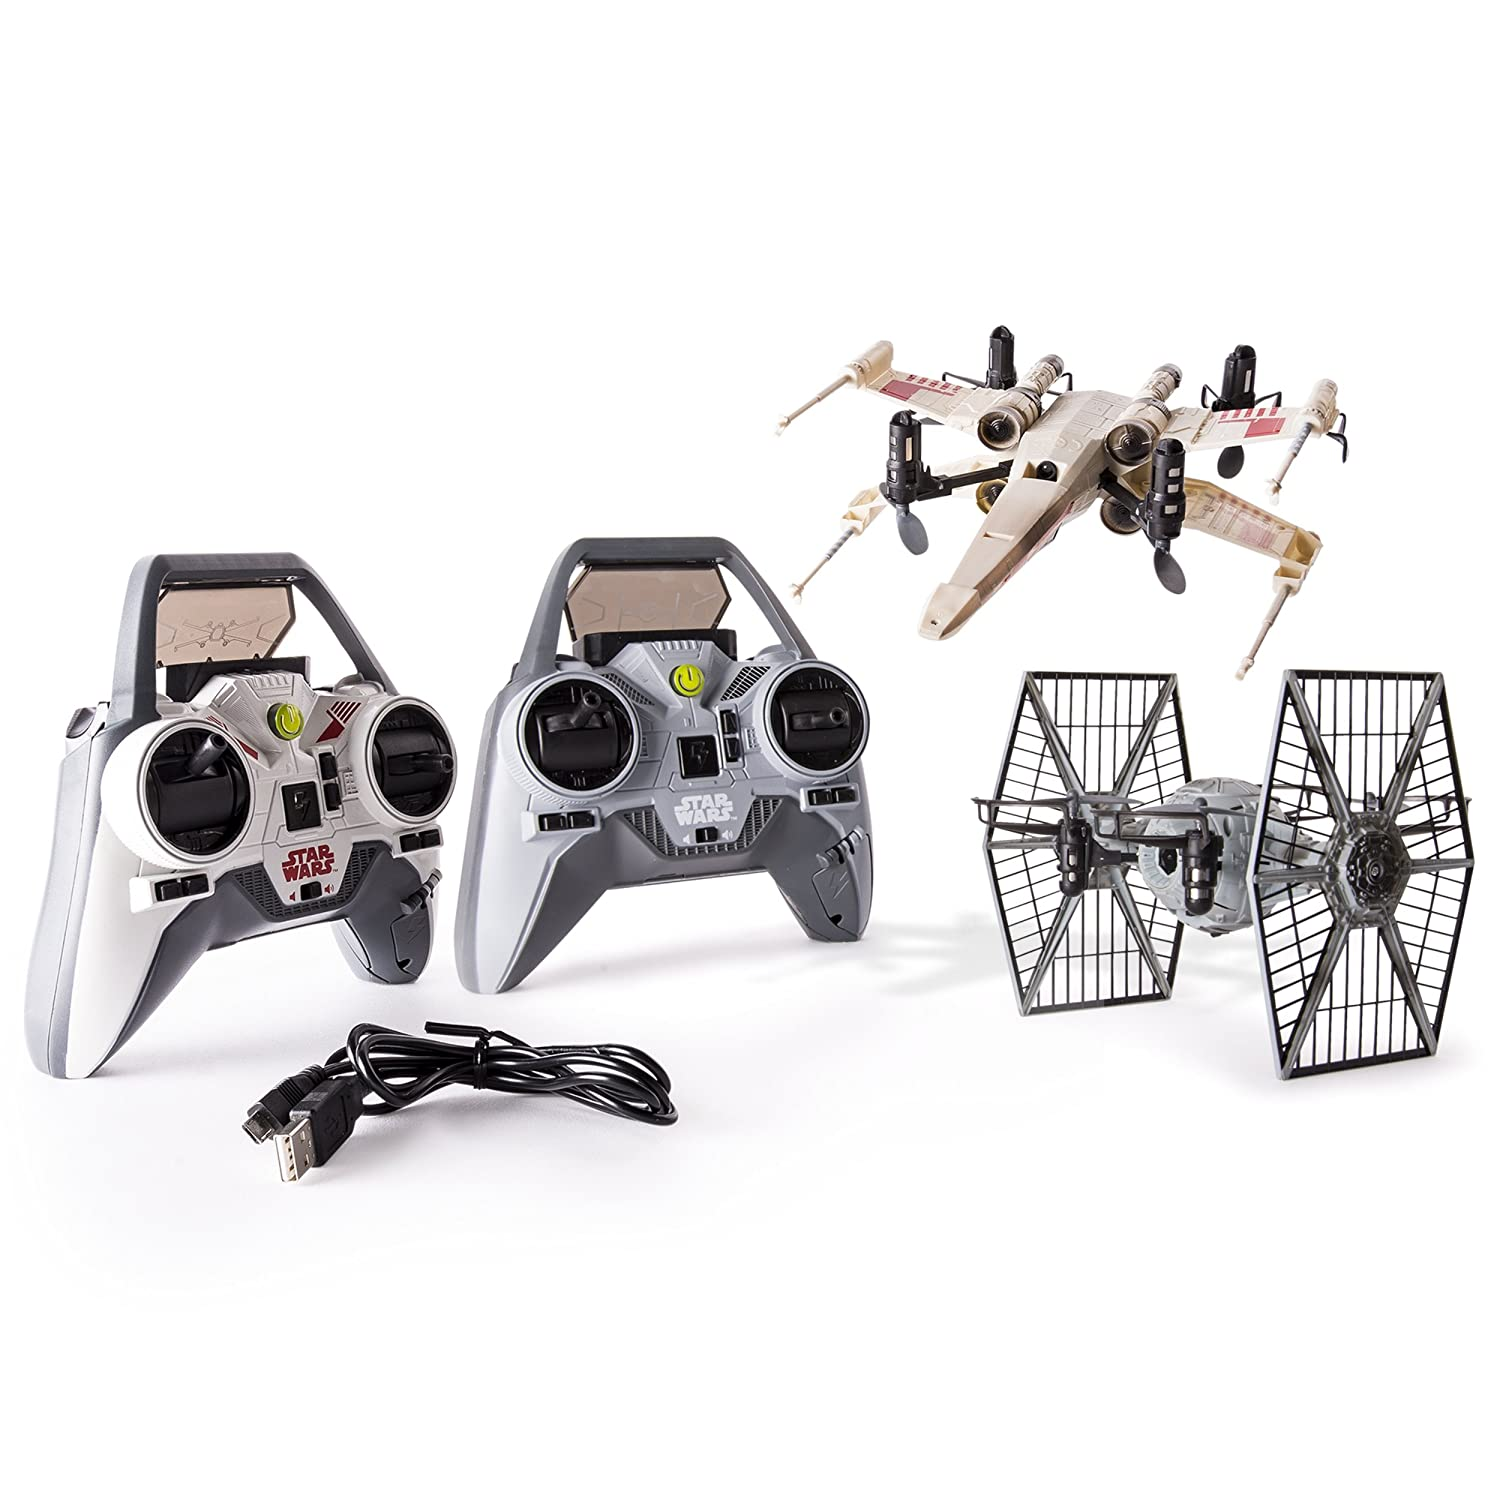 Star Wars X-wing vs. TIE Fighter Drone Battle Set by Air Hogs